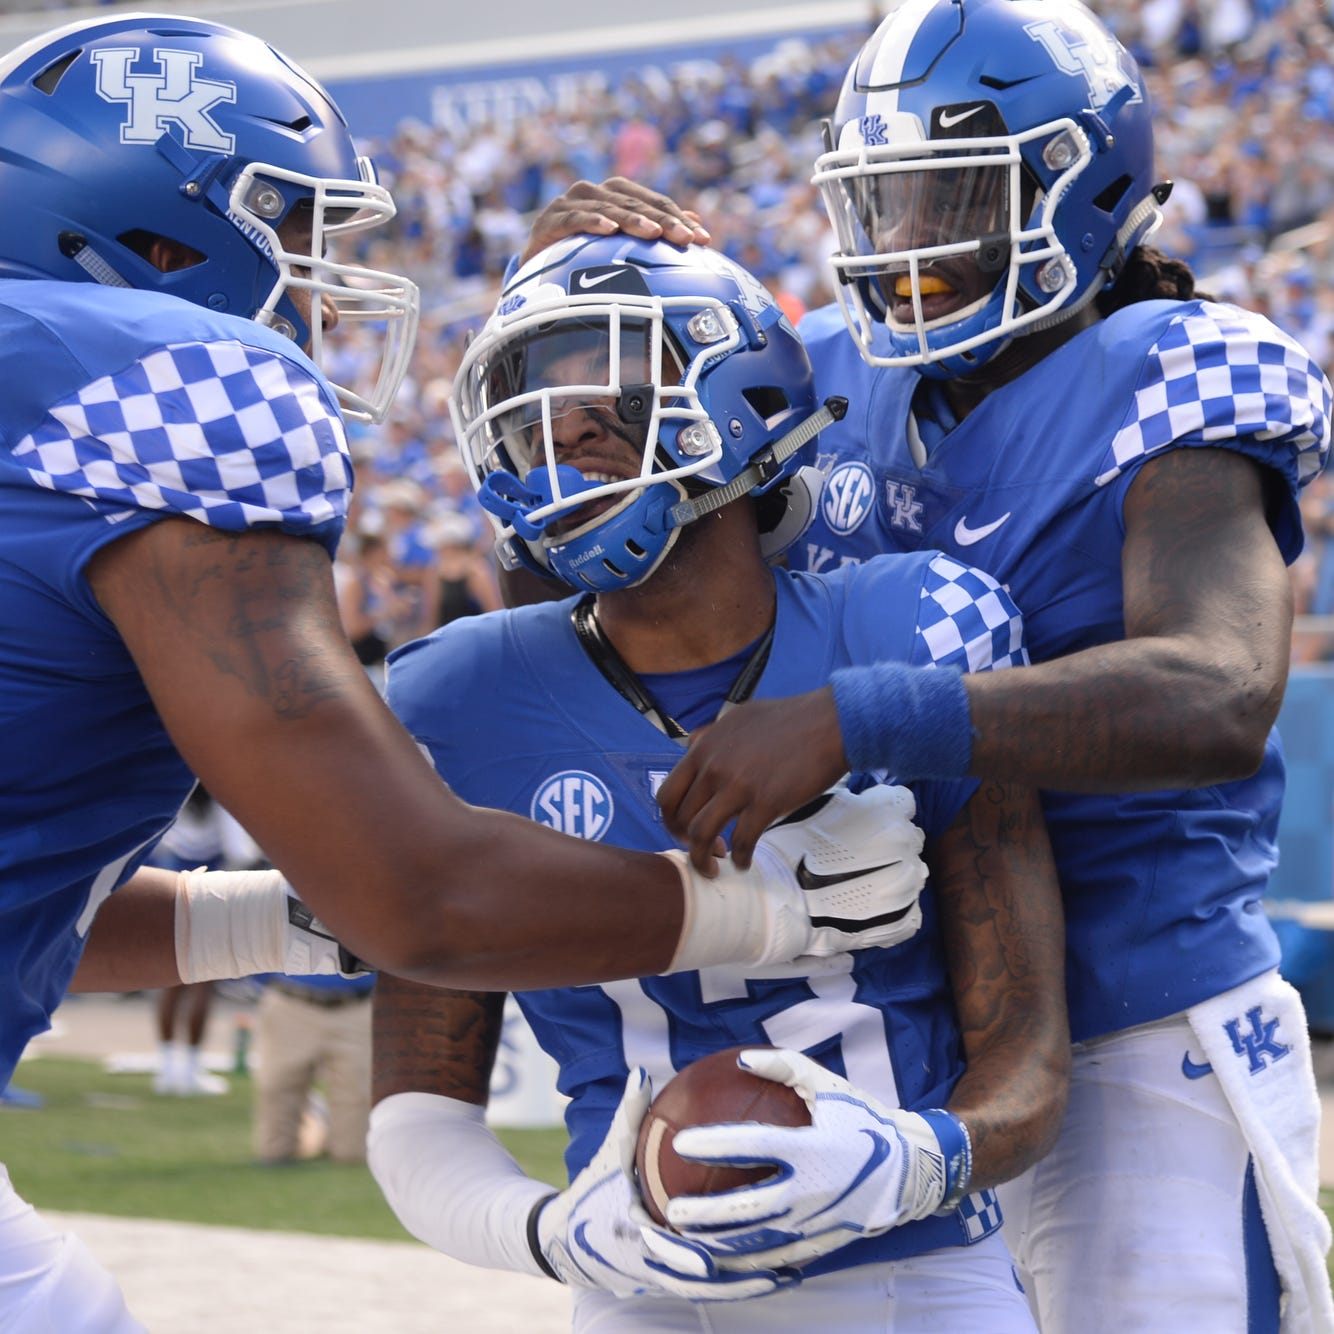 UK receiver averaging infinite yards per catch ready for a larger role